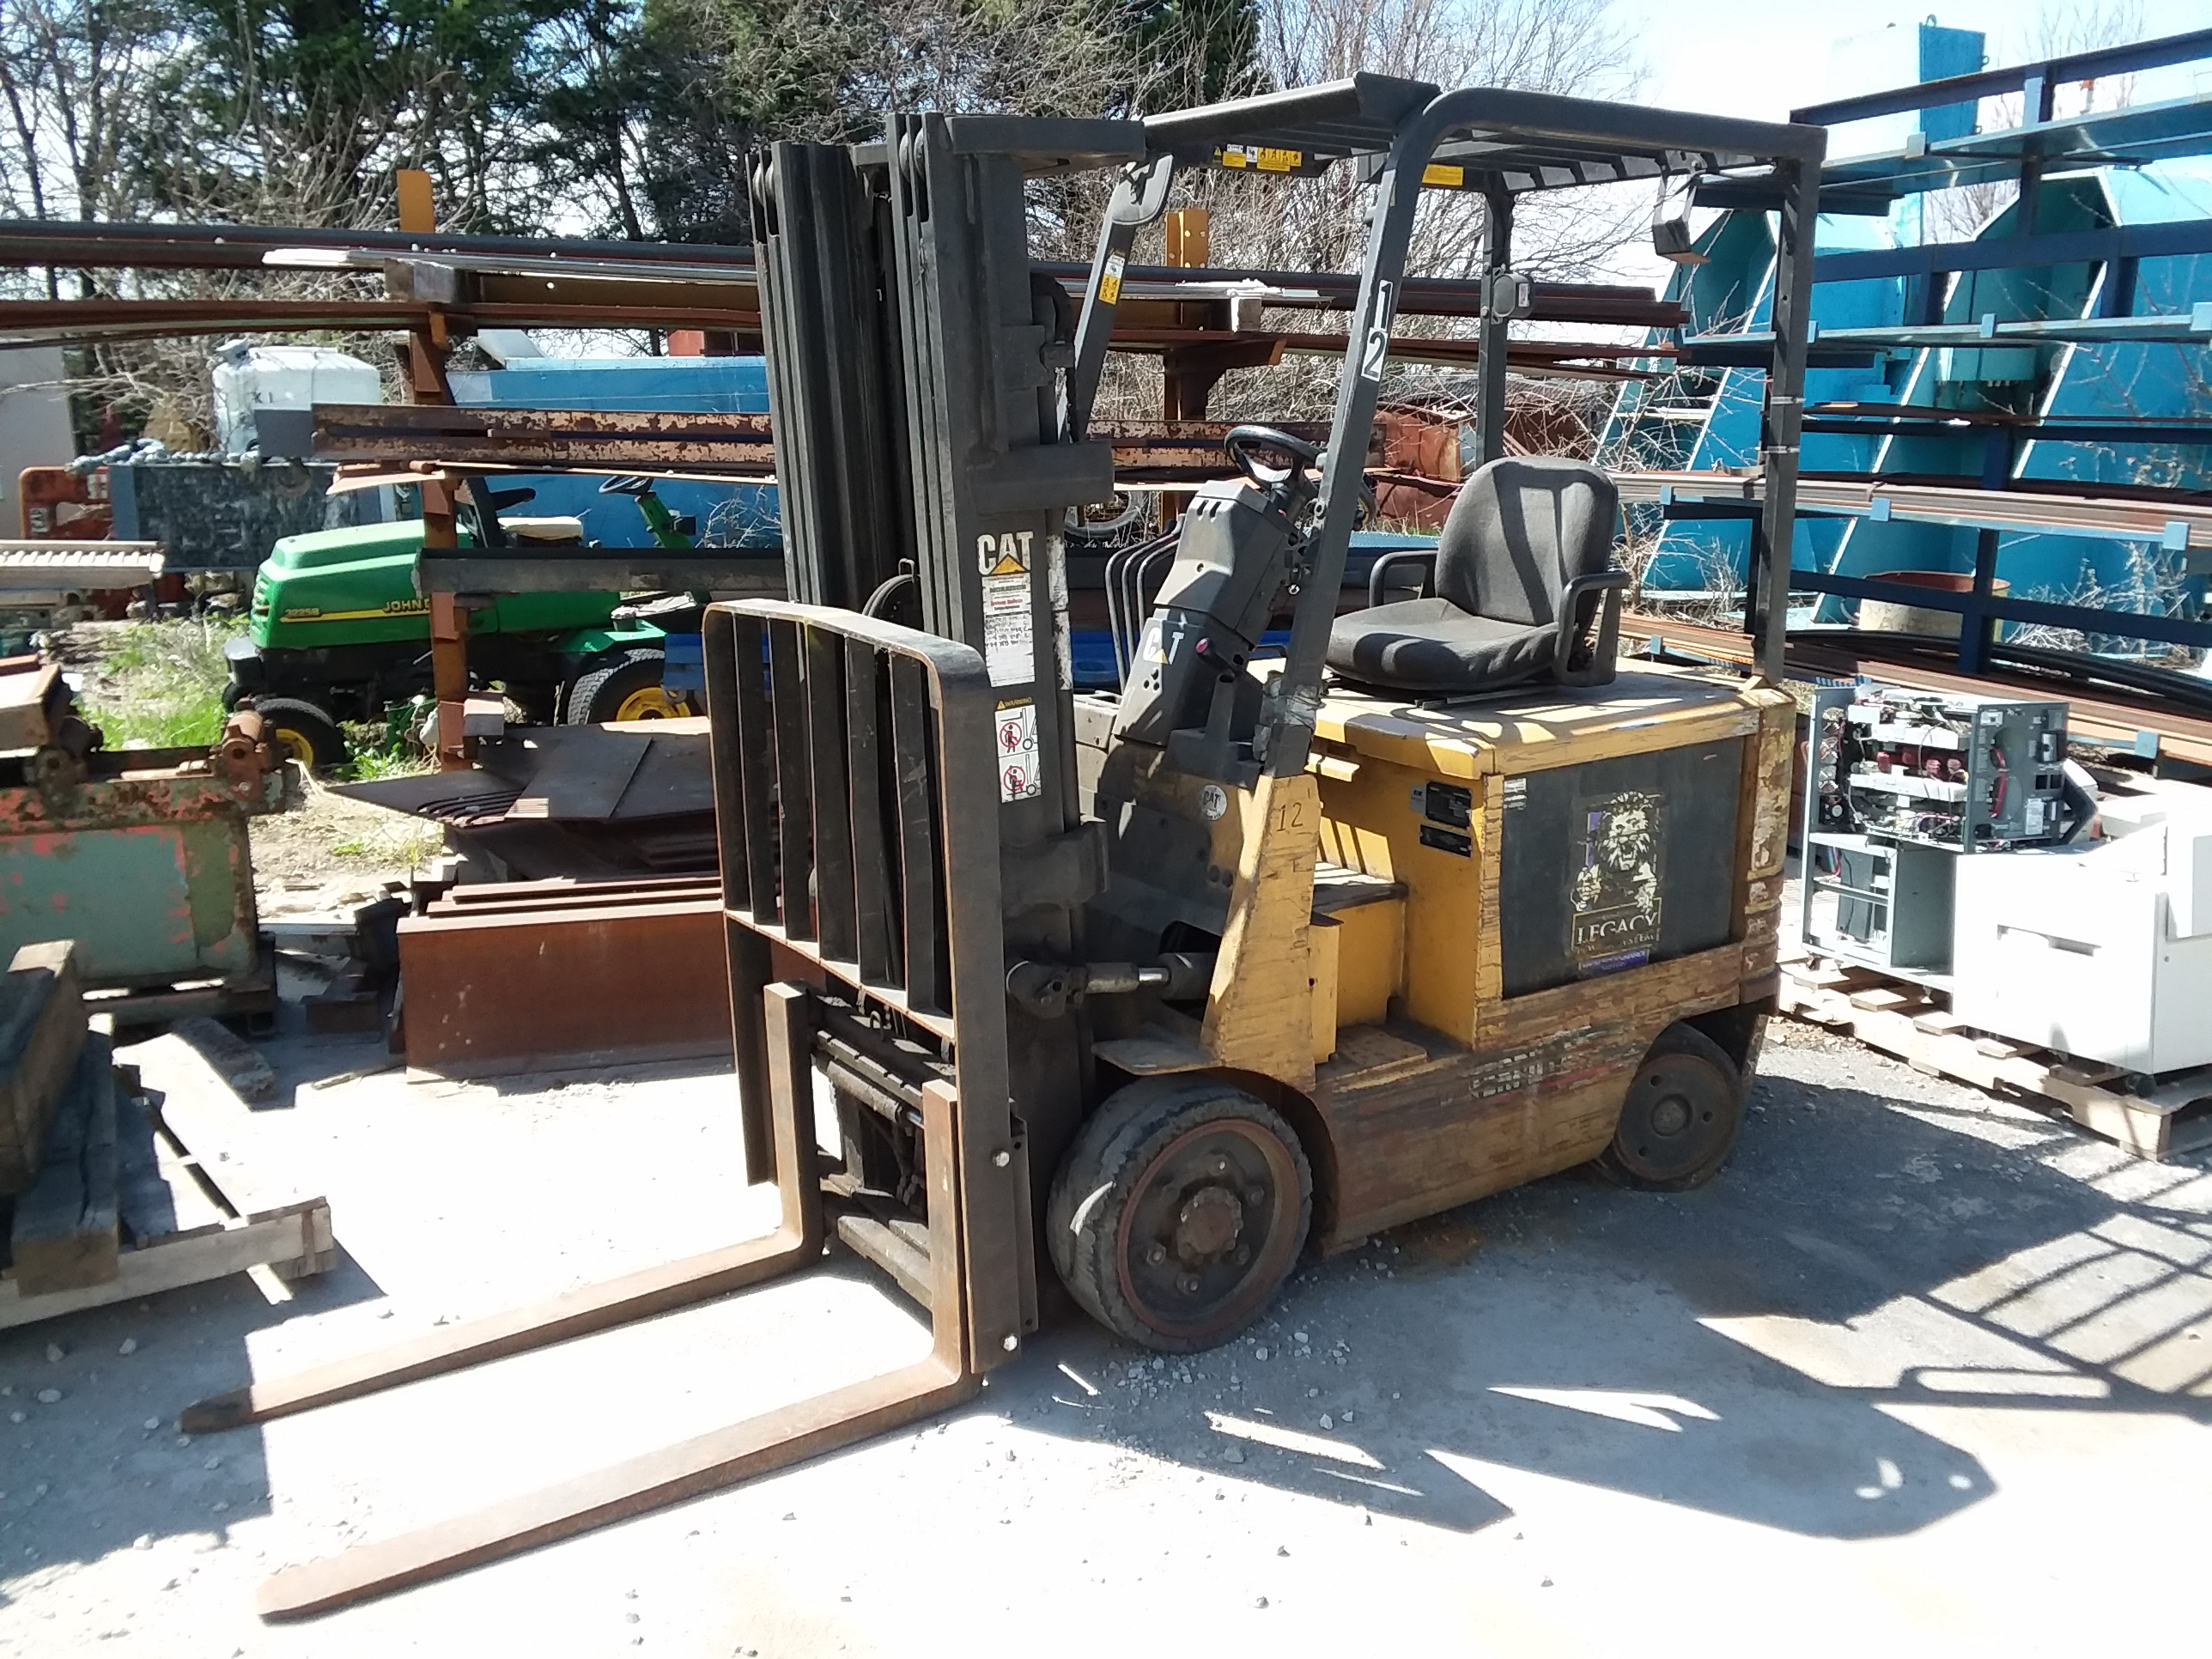 1 - PREOWNED CAT FORKLIFT 5000LBS, MODEL 2EC25, S/N <br>A2EC262313